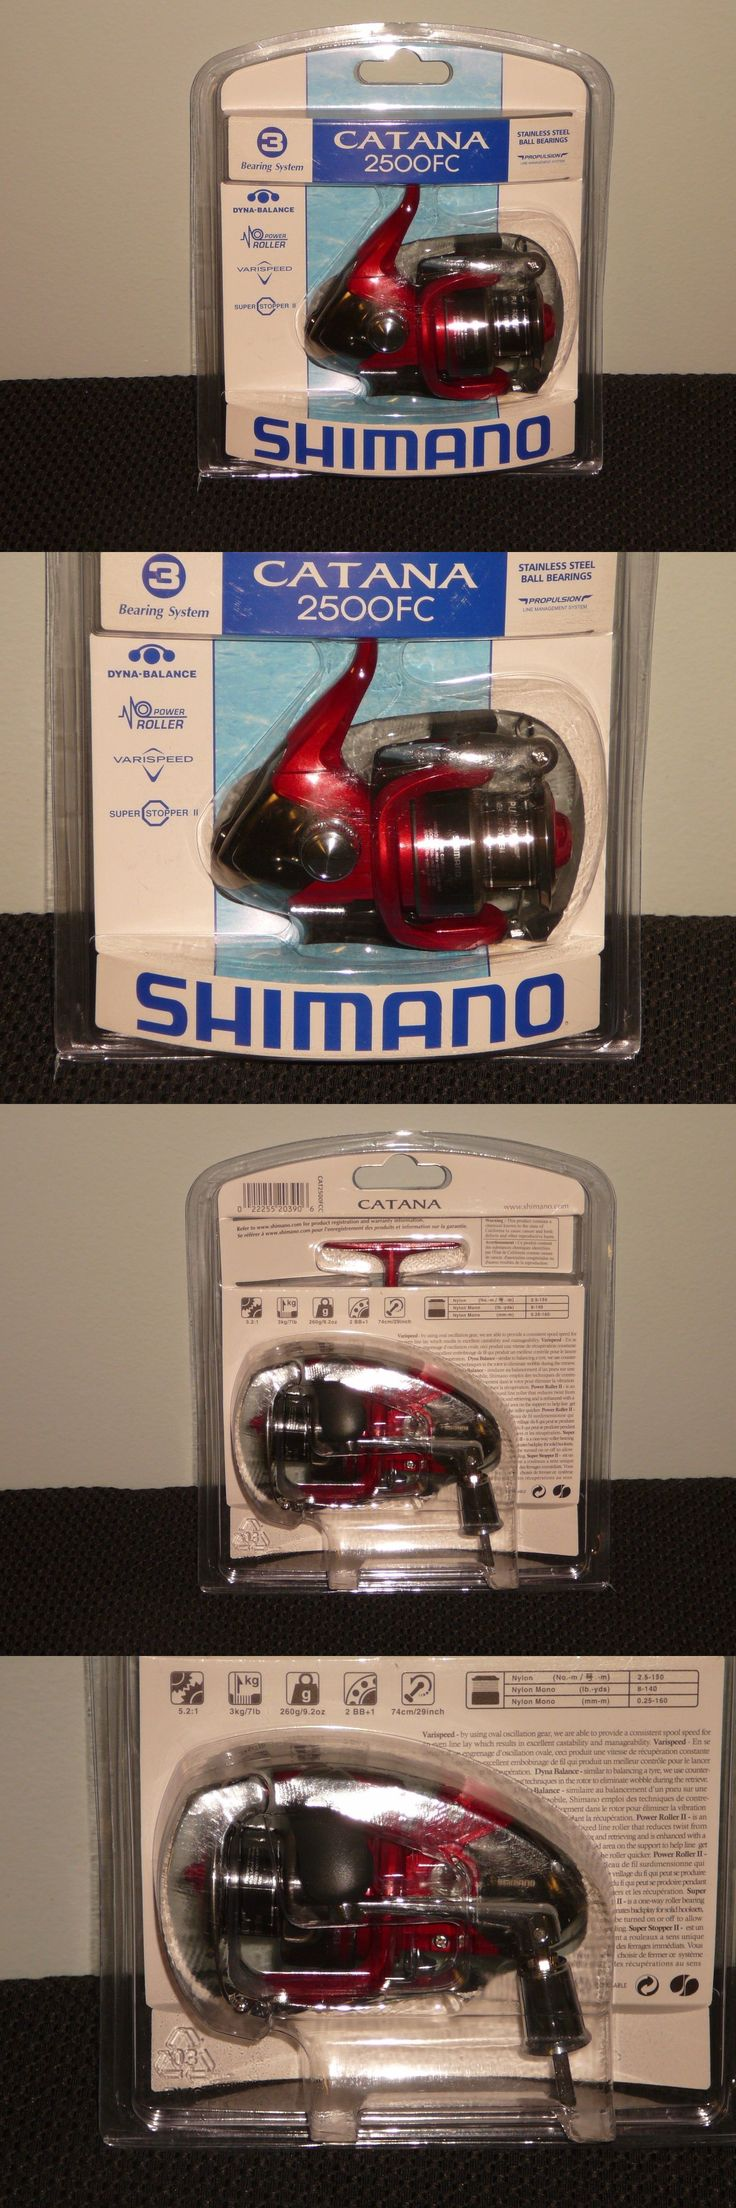 Spincasting Reels 108154: *New* Shimano Catana 2500Fc Fishing Reel Bearing System3 Dyna-Balance Varispeed BUY IT NOW ONLY: $36.95